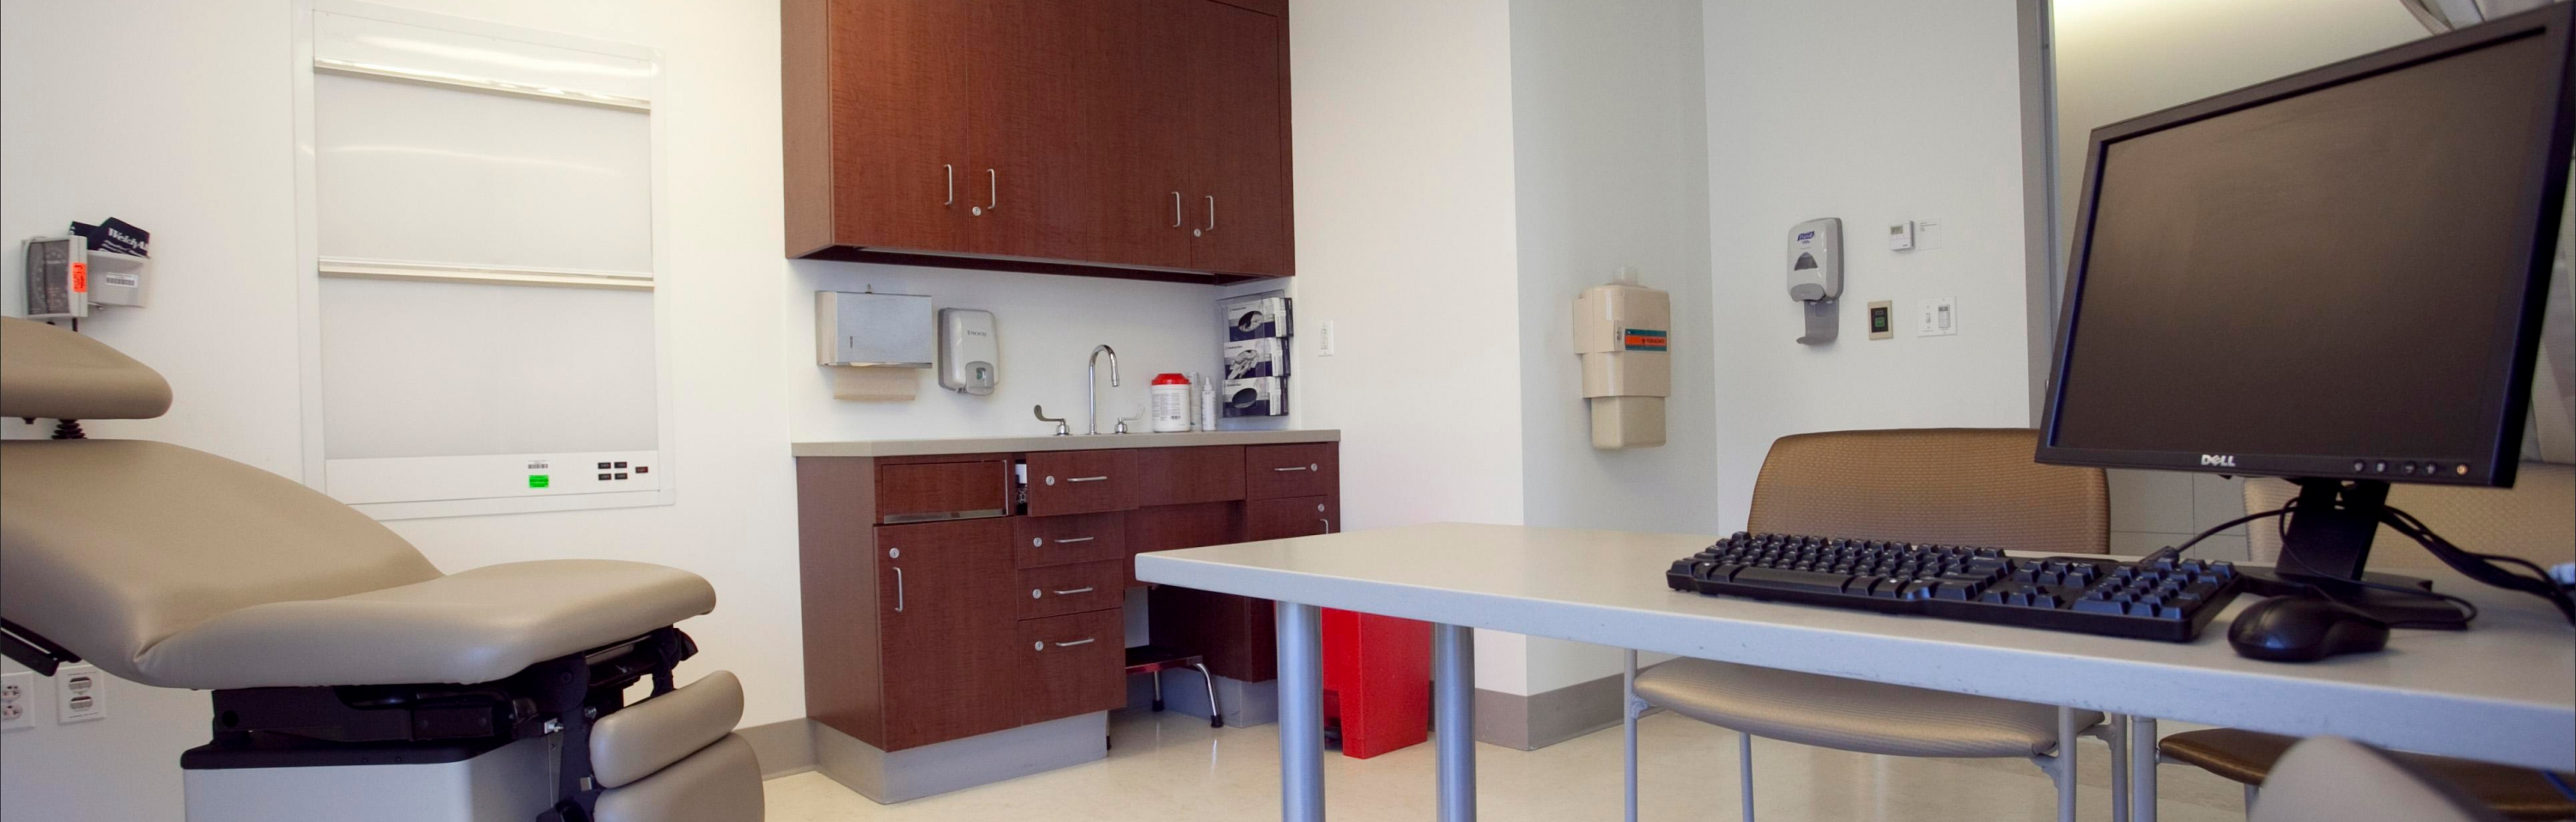 Exam room in the Kidney Transplant clinic